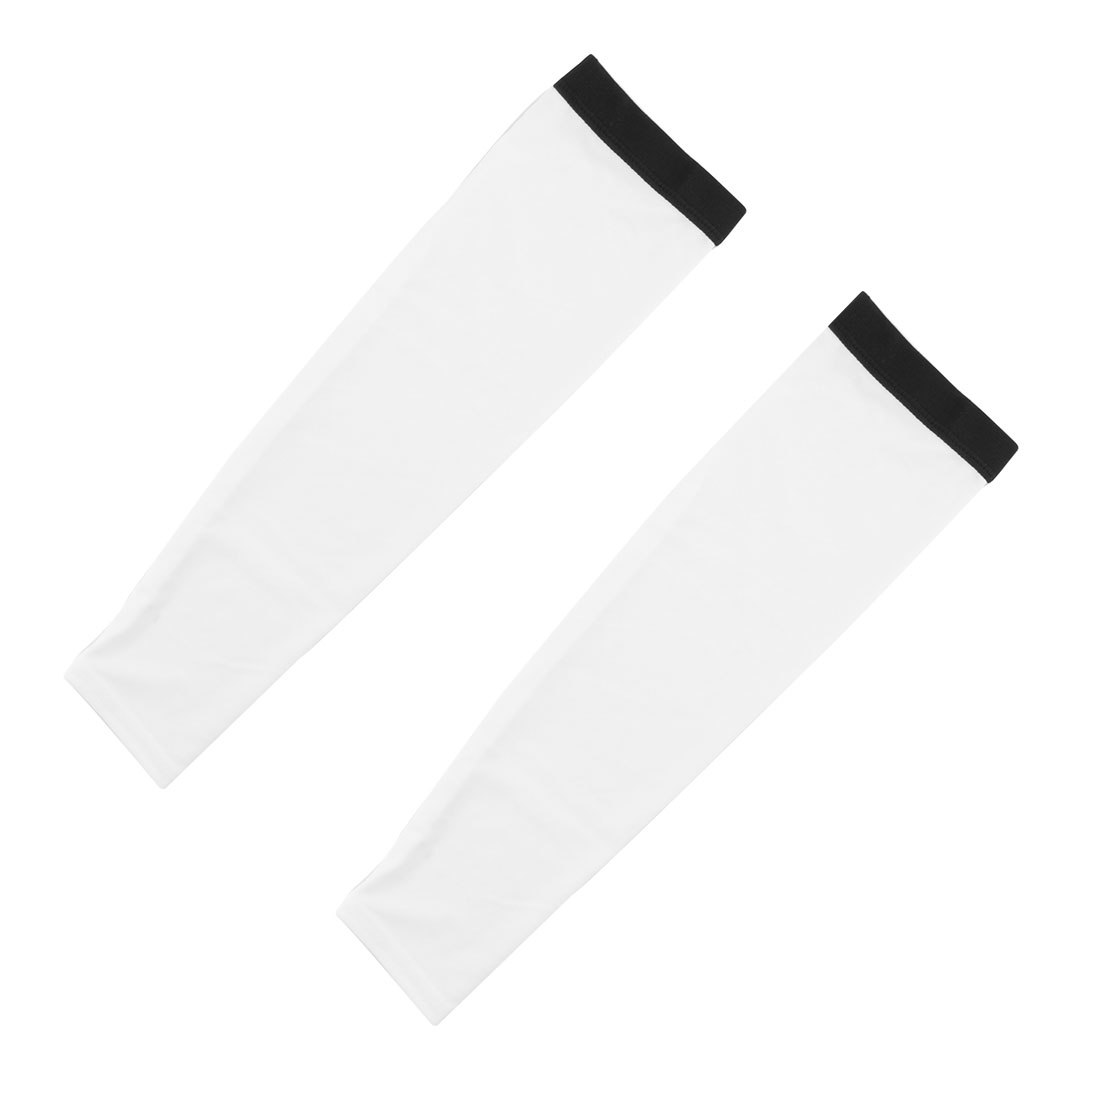 Outdoor Polyester Anti-UV Stretchy Arm Sleeve Protection Decor White Size M Pair